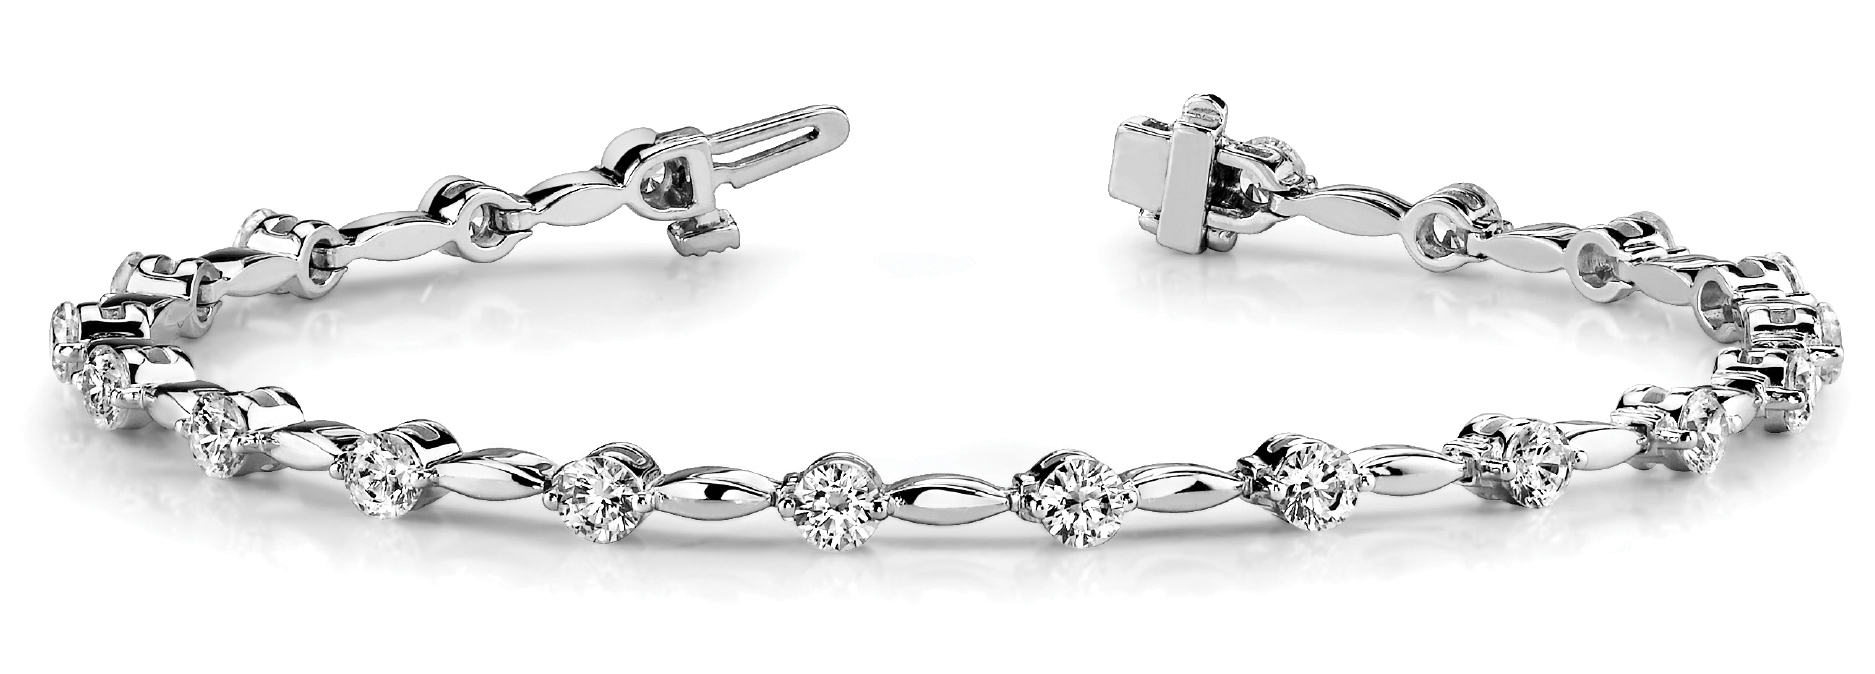 3.99 Carat Round Diamond Bar Link Platinum Bracelet